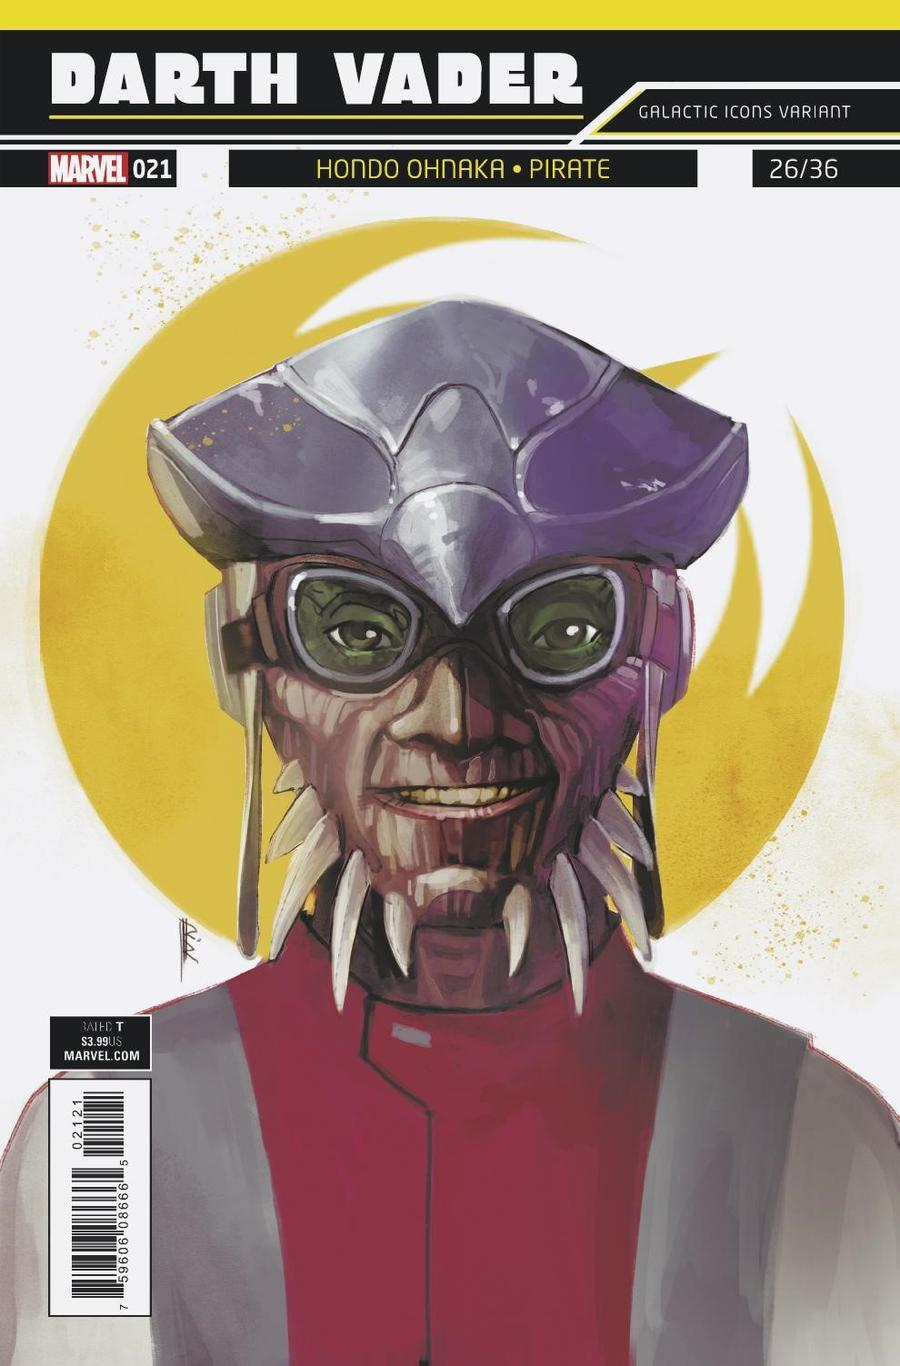 Darth Vader Vol 2 #21 Cover B Variant Rod Reis Galactic Icon Cover